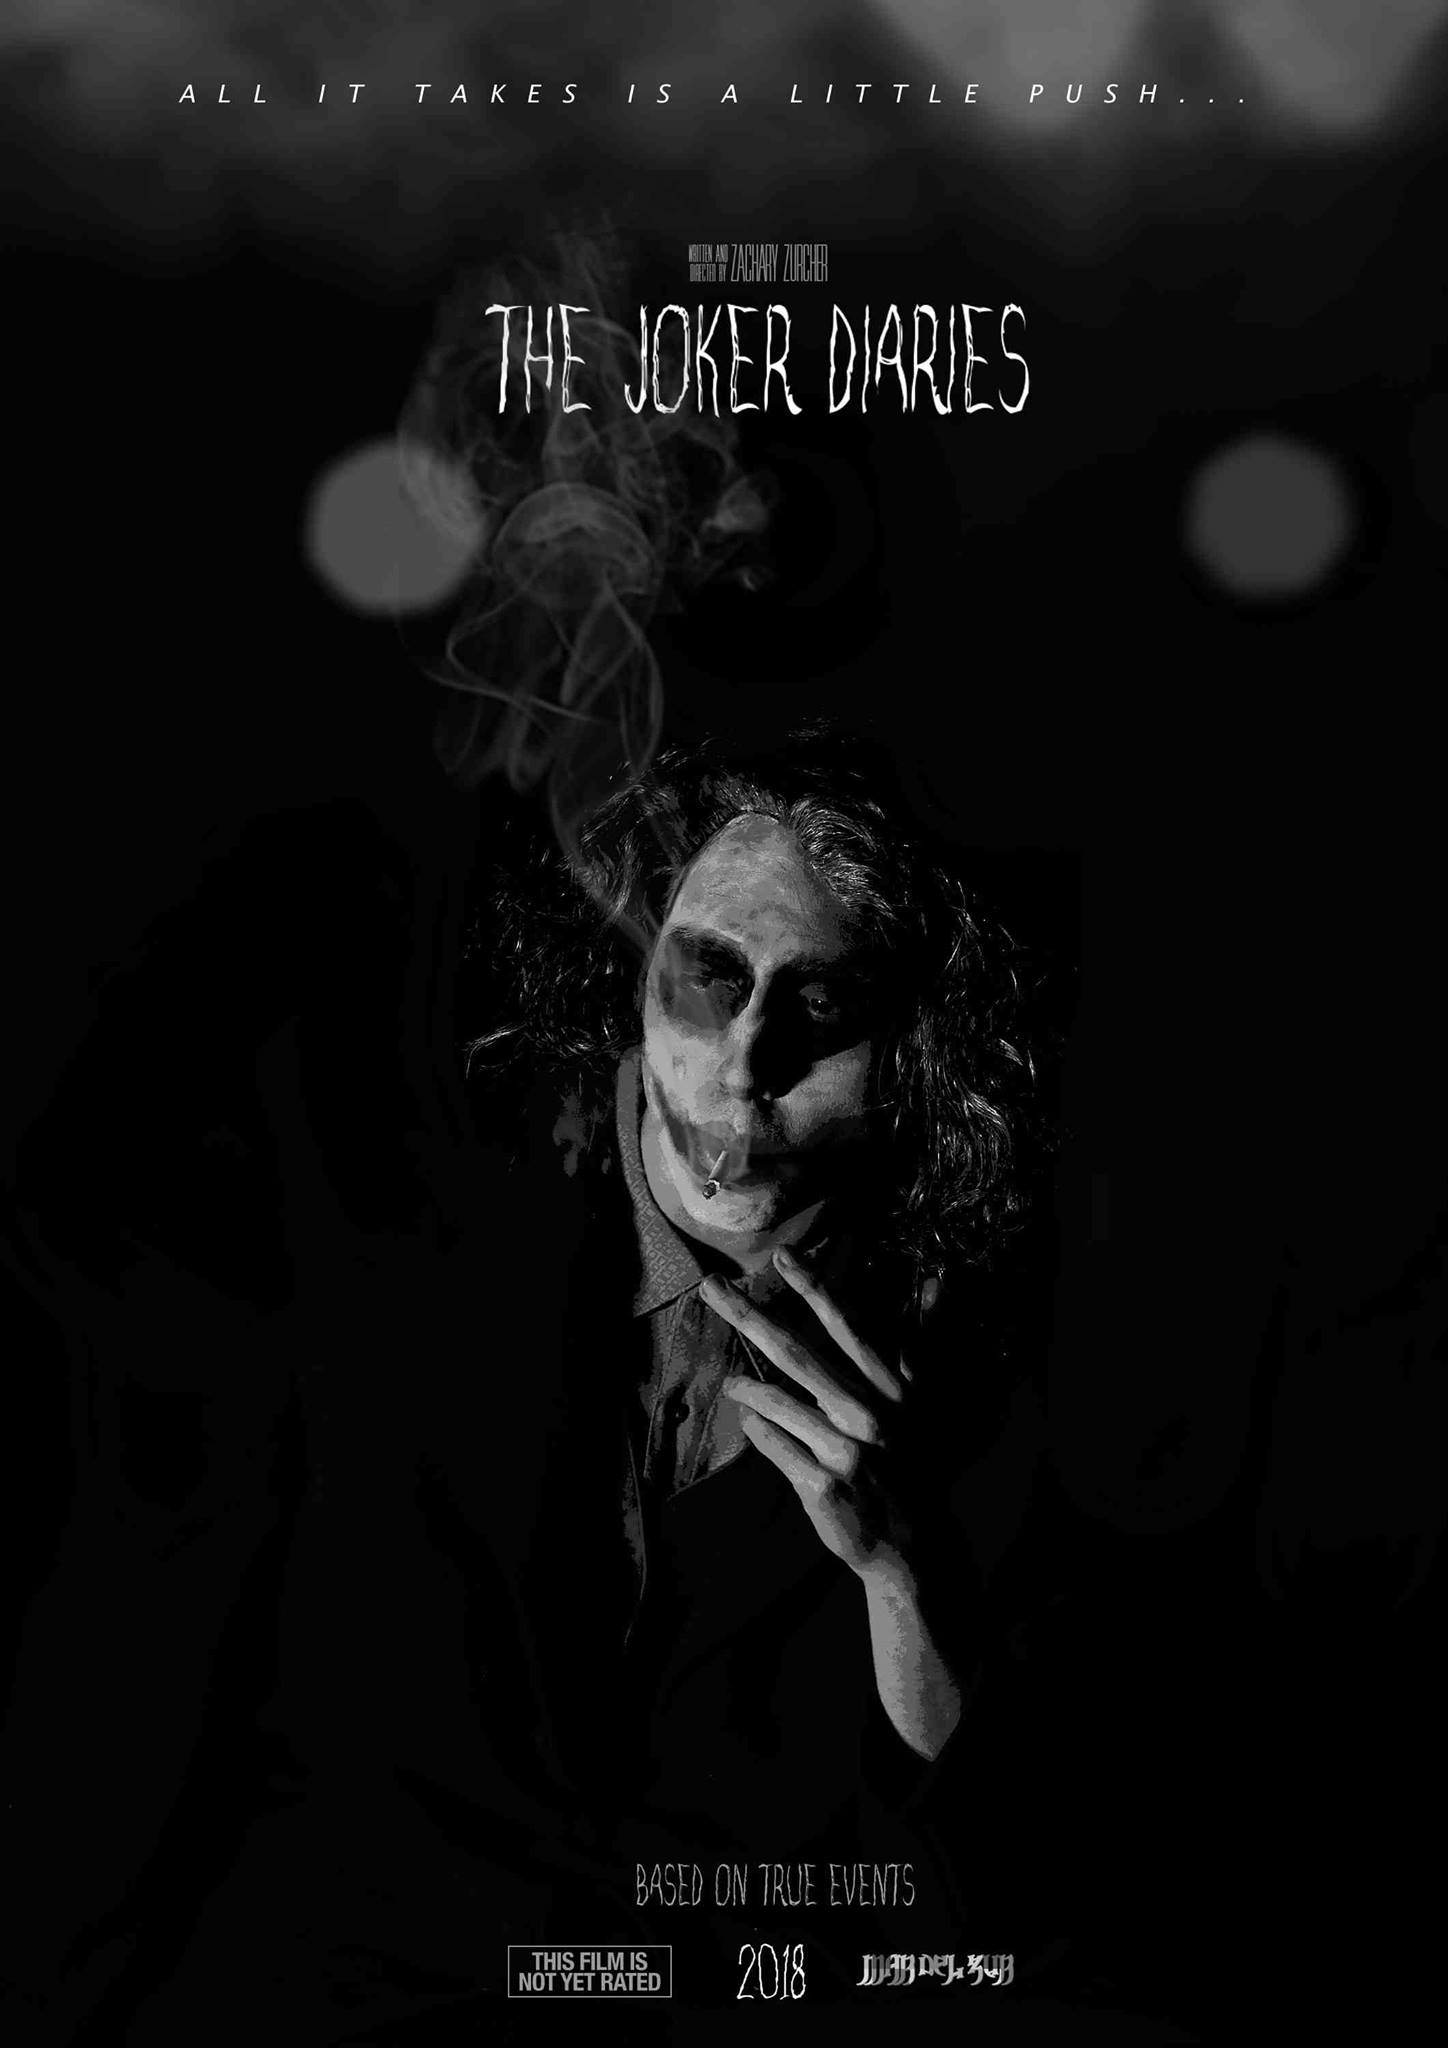 The joker diaries 2018 imdb